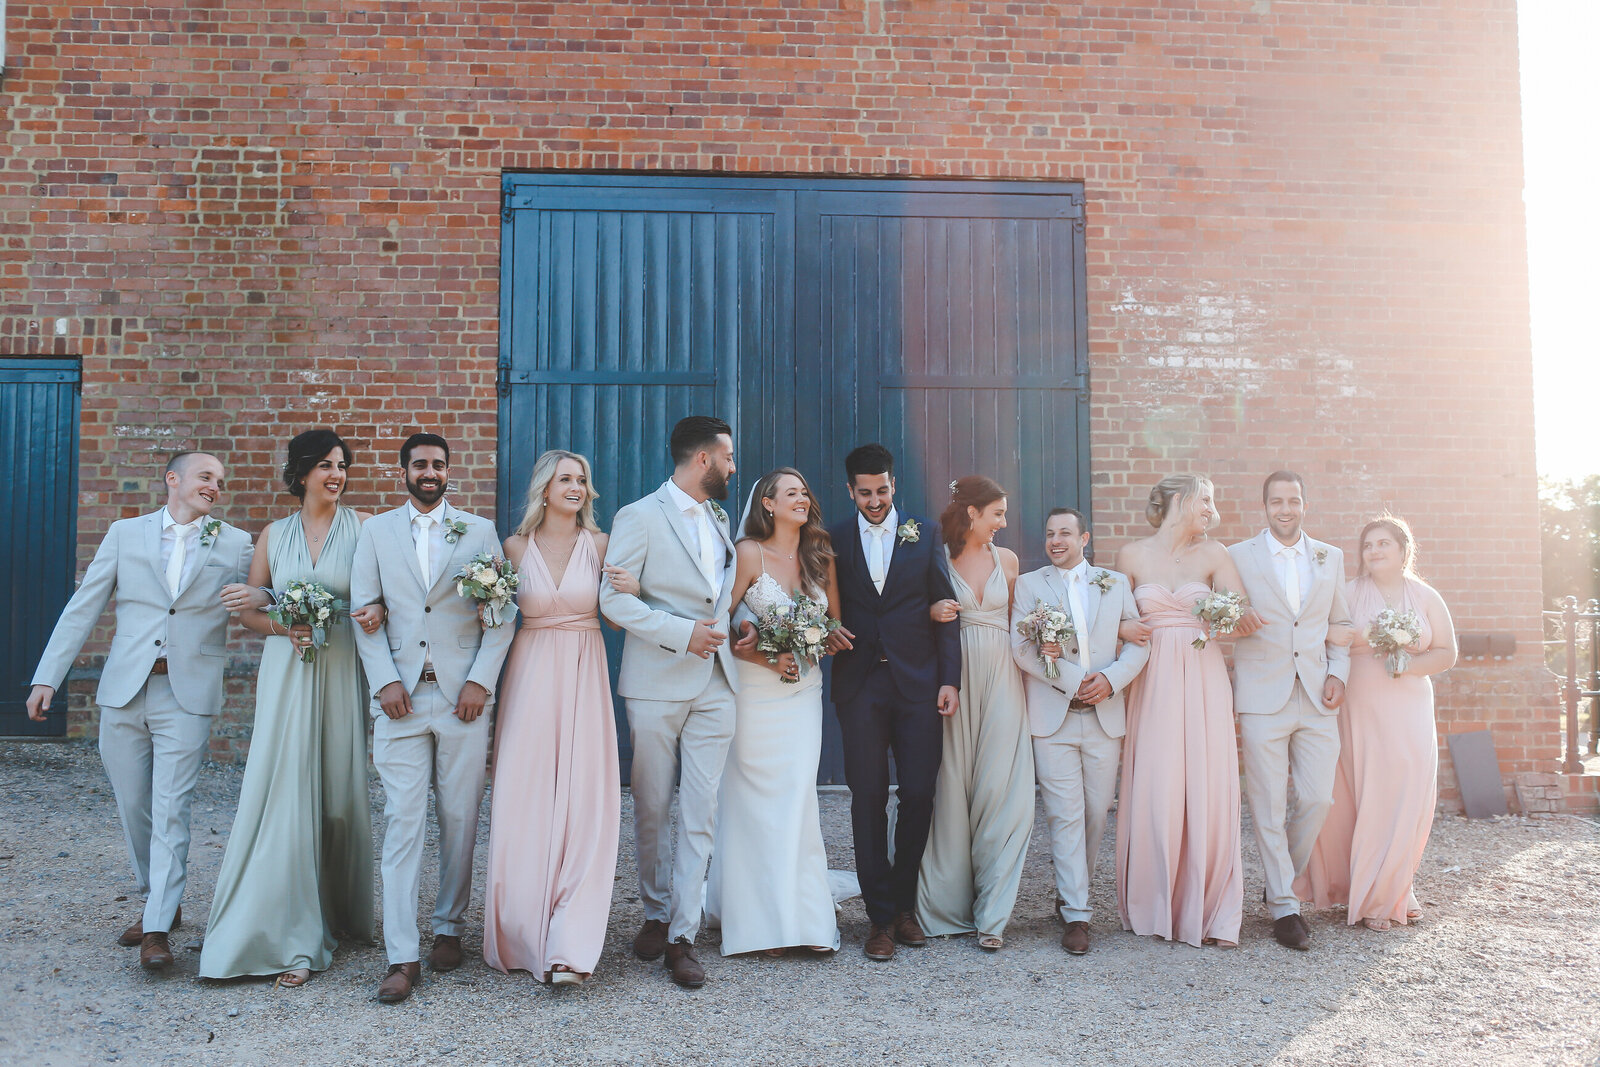 WP-WEDDING-PARTY-SUNSHINE-BURY-COURT-BARN_0021